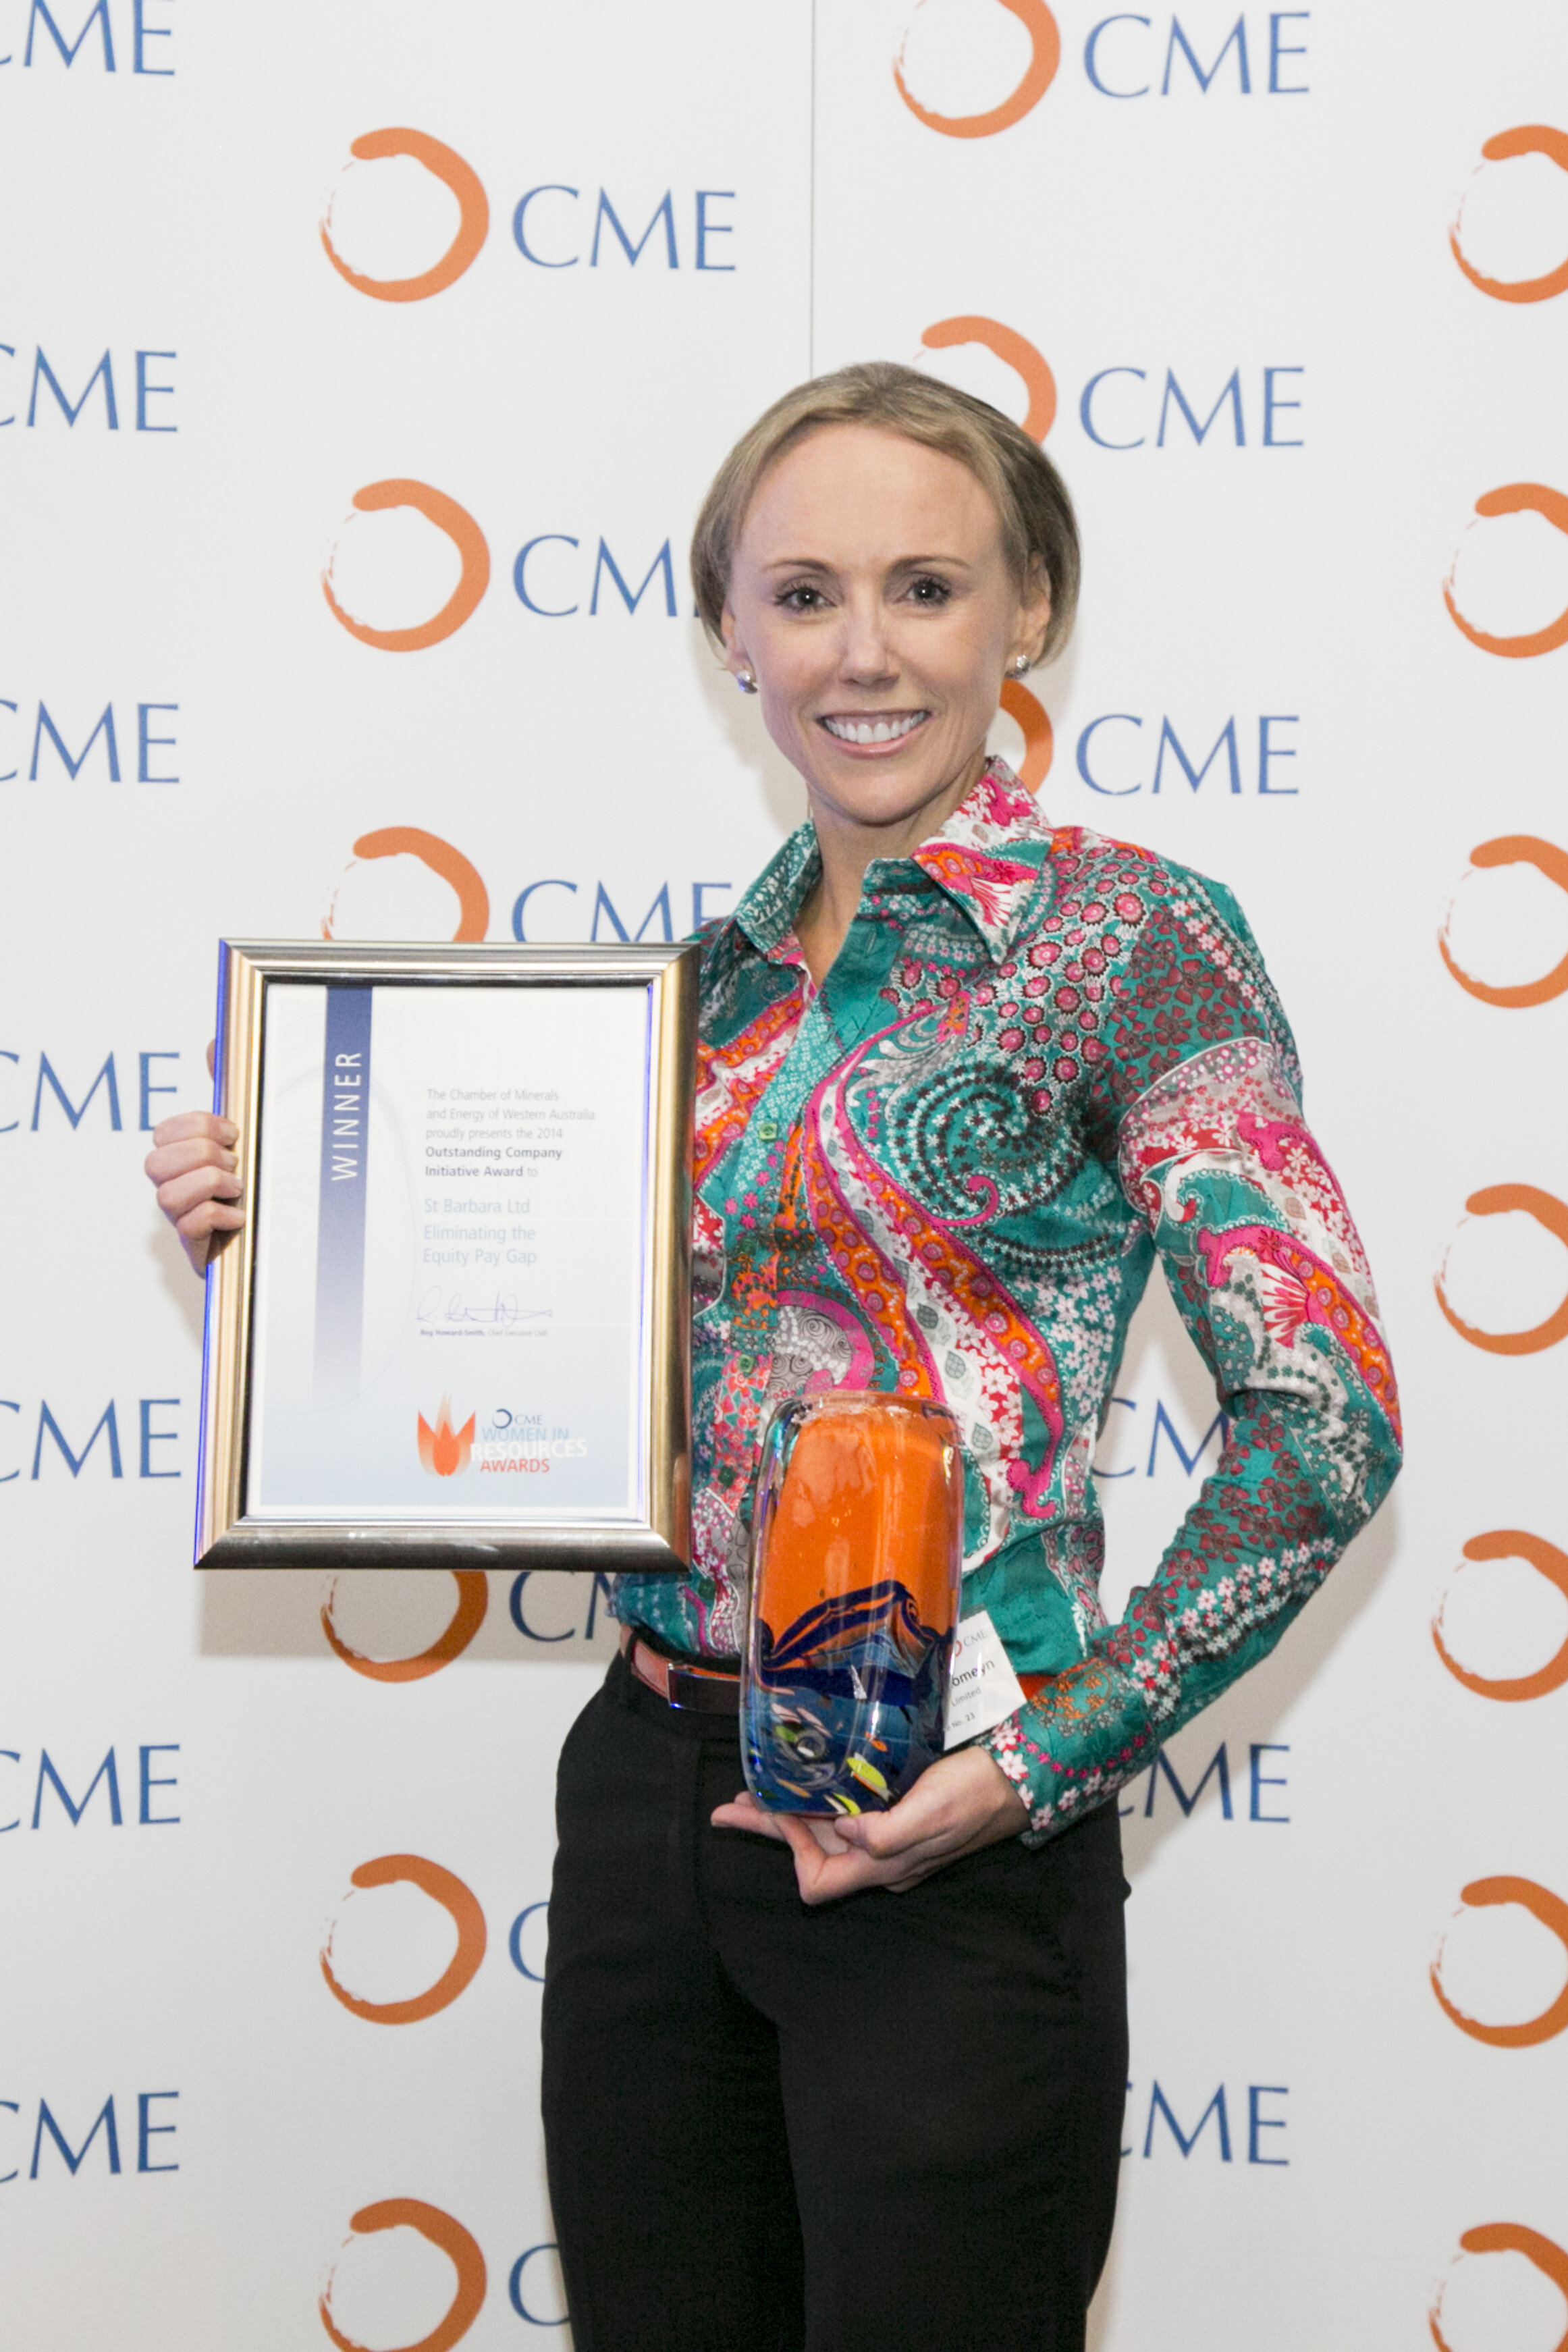 209 CME Women in Resources Awards.jpg